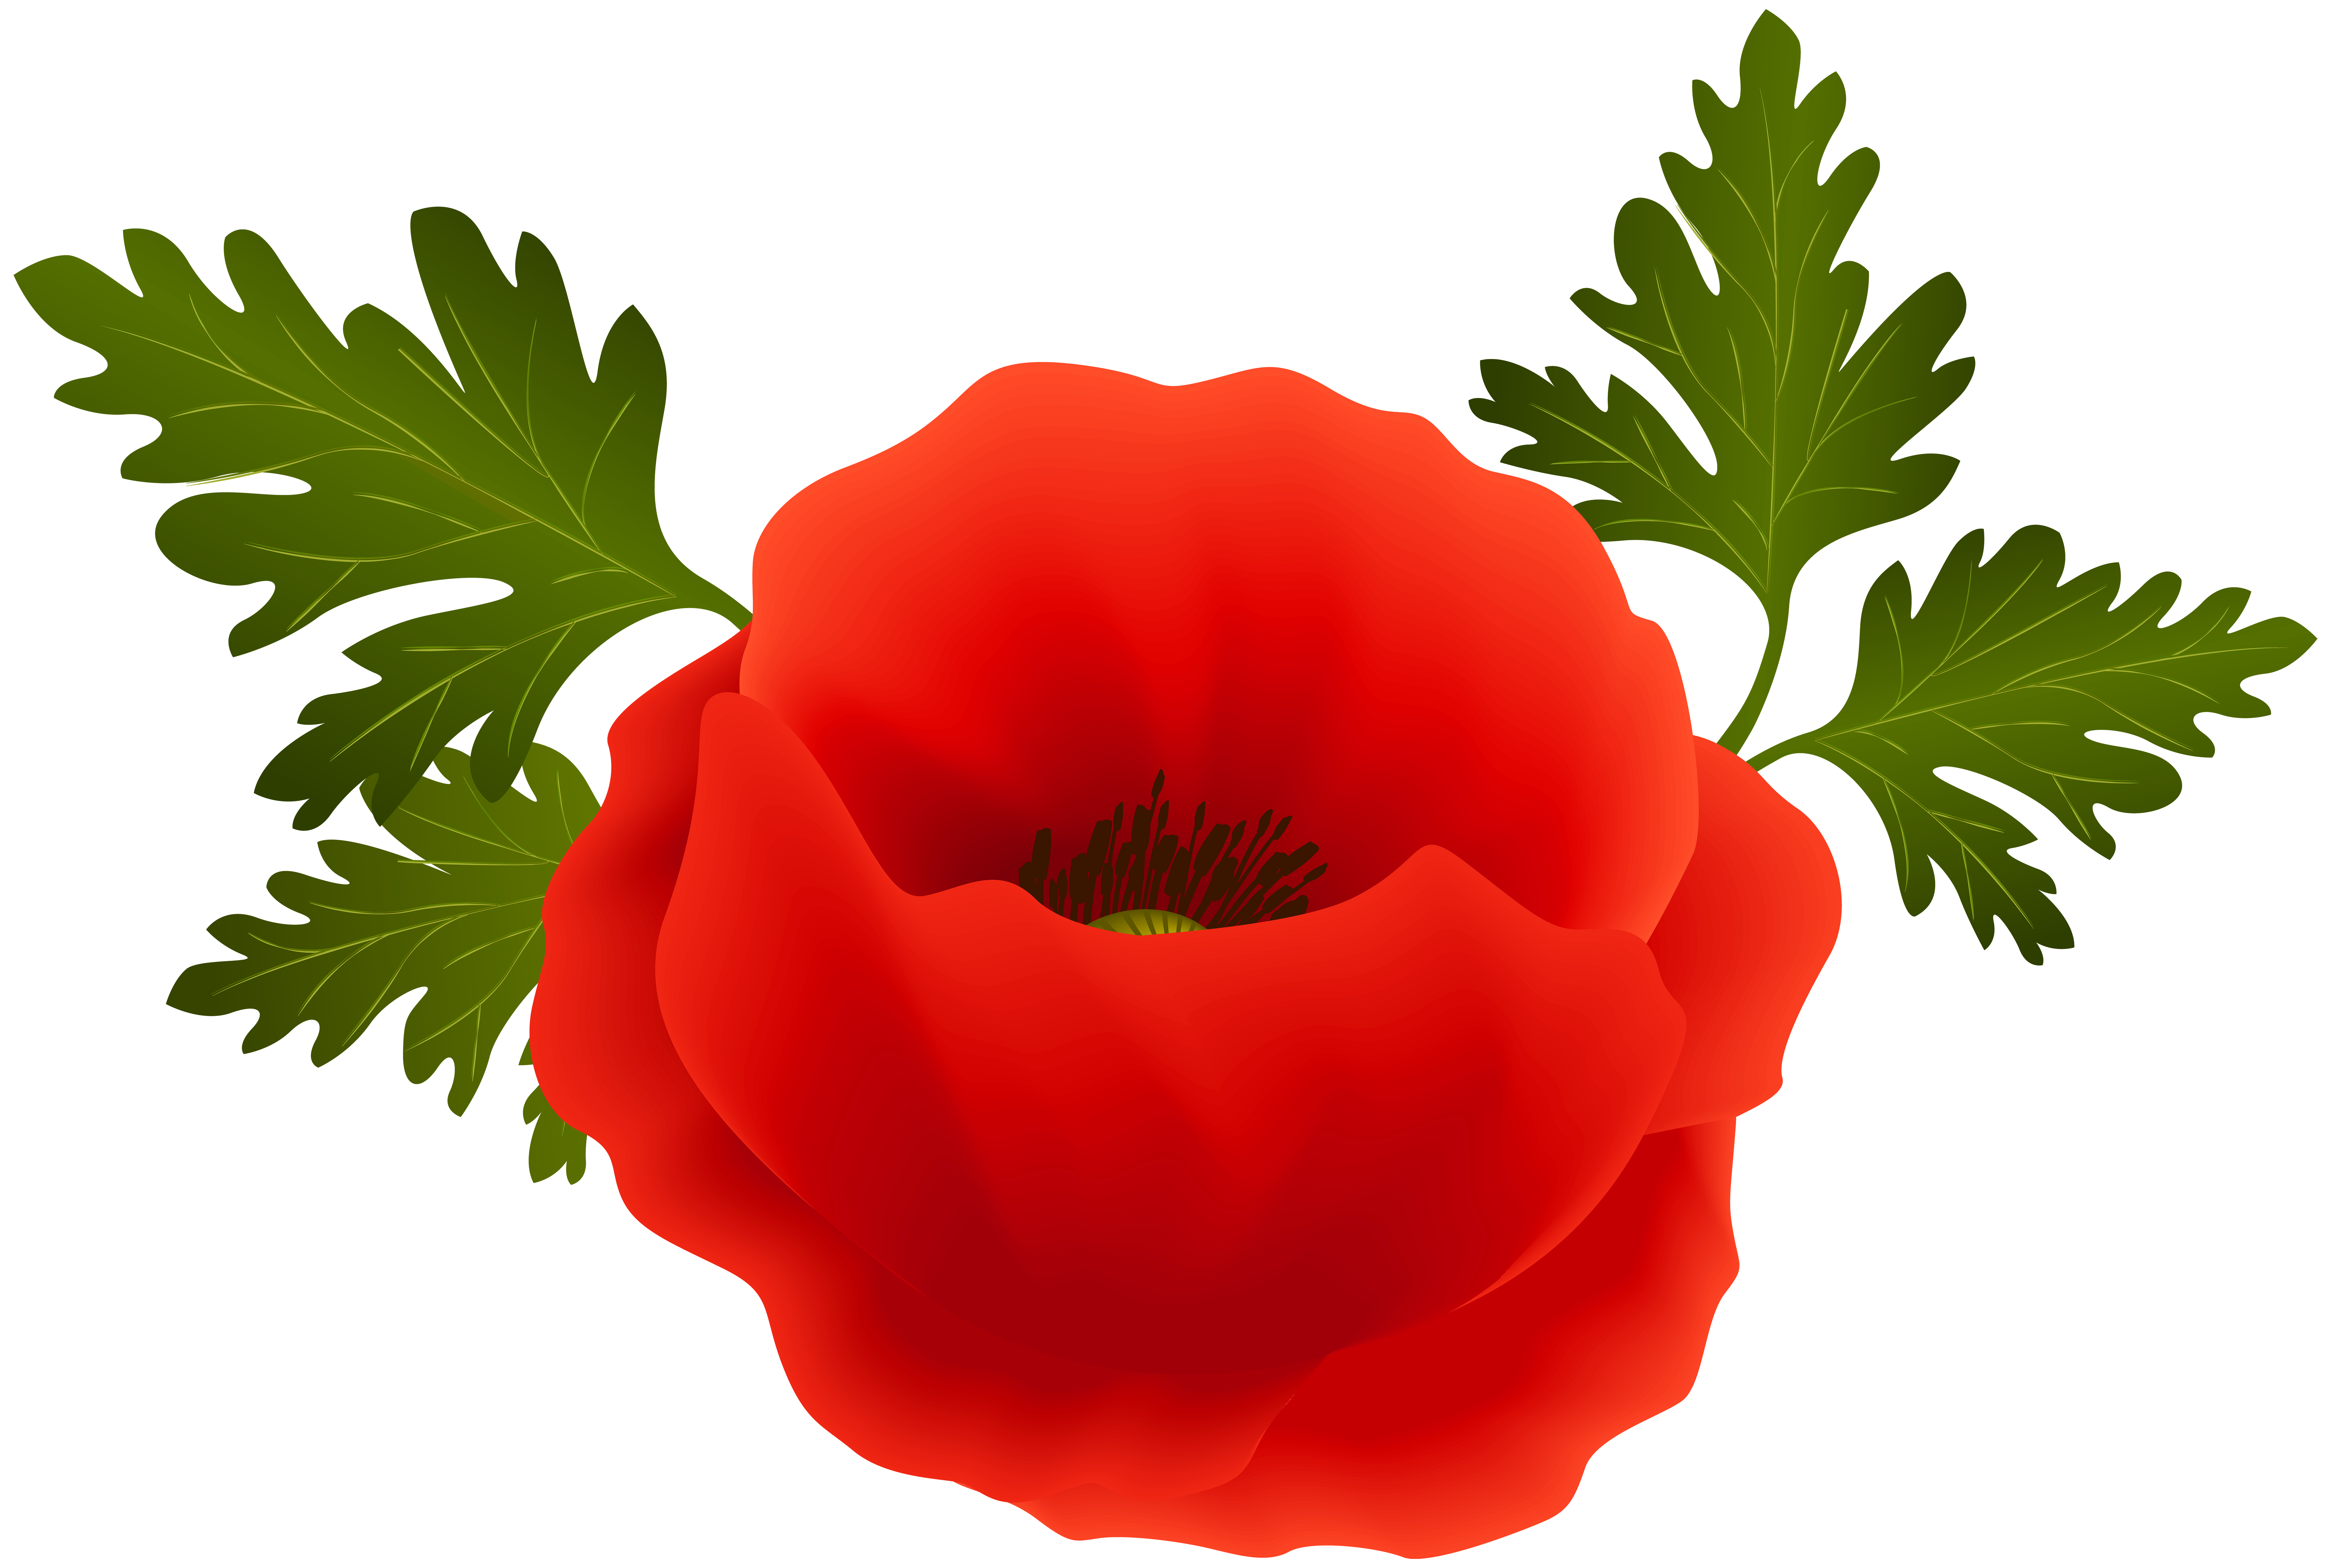 Poppy clipart. Png clip art image